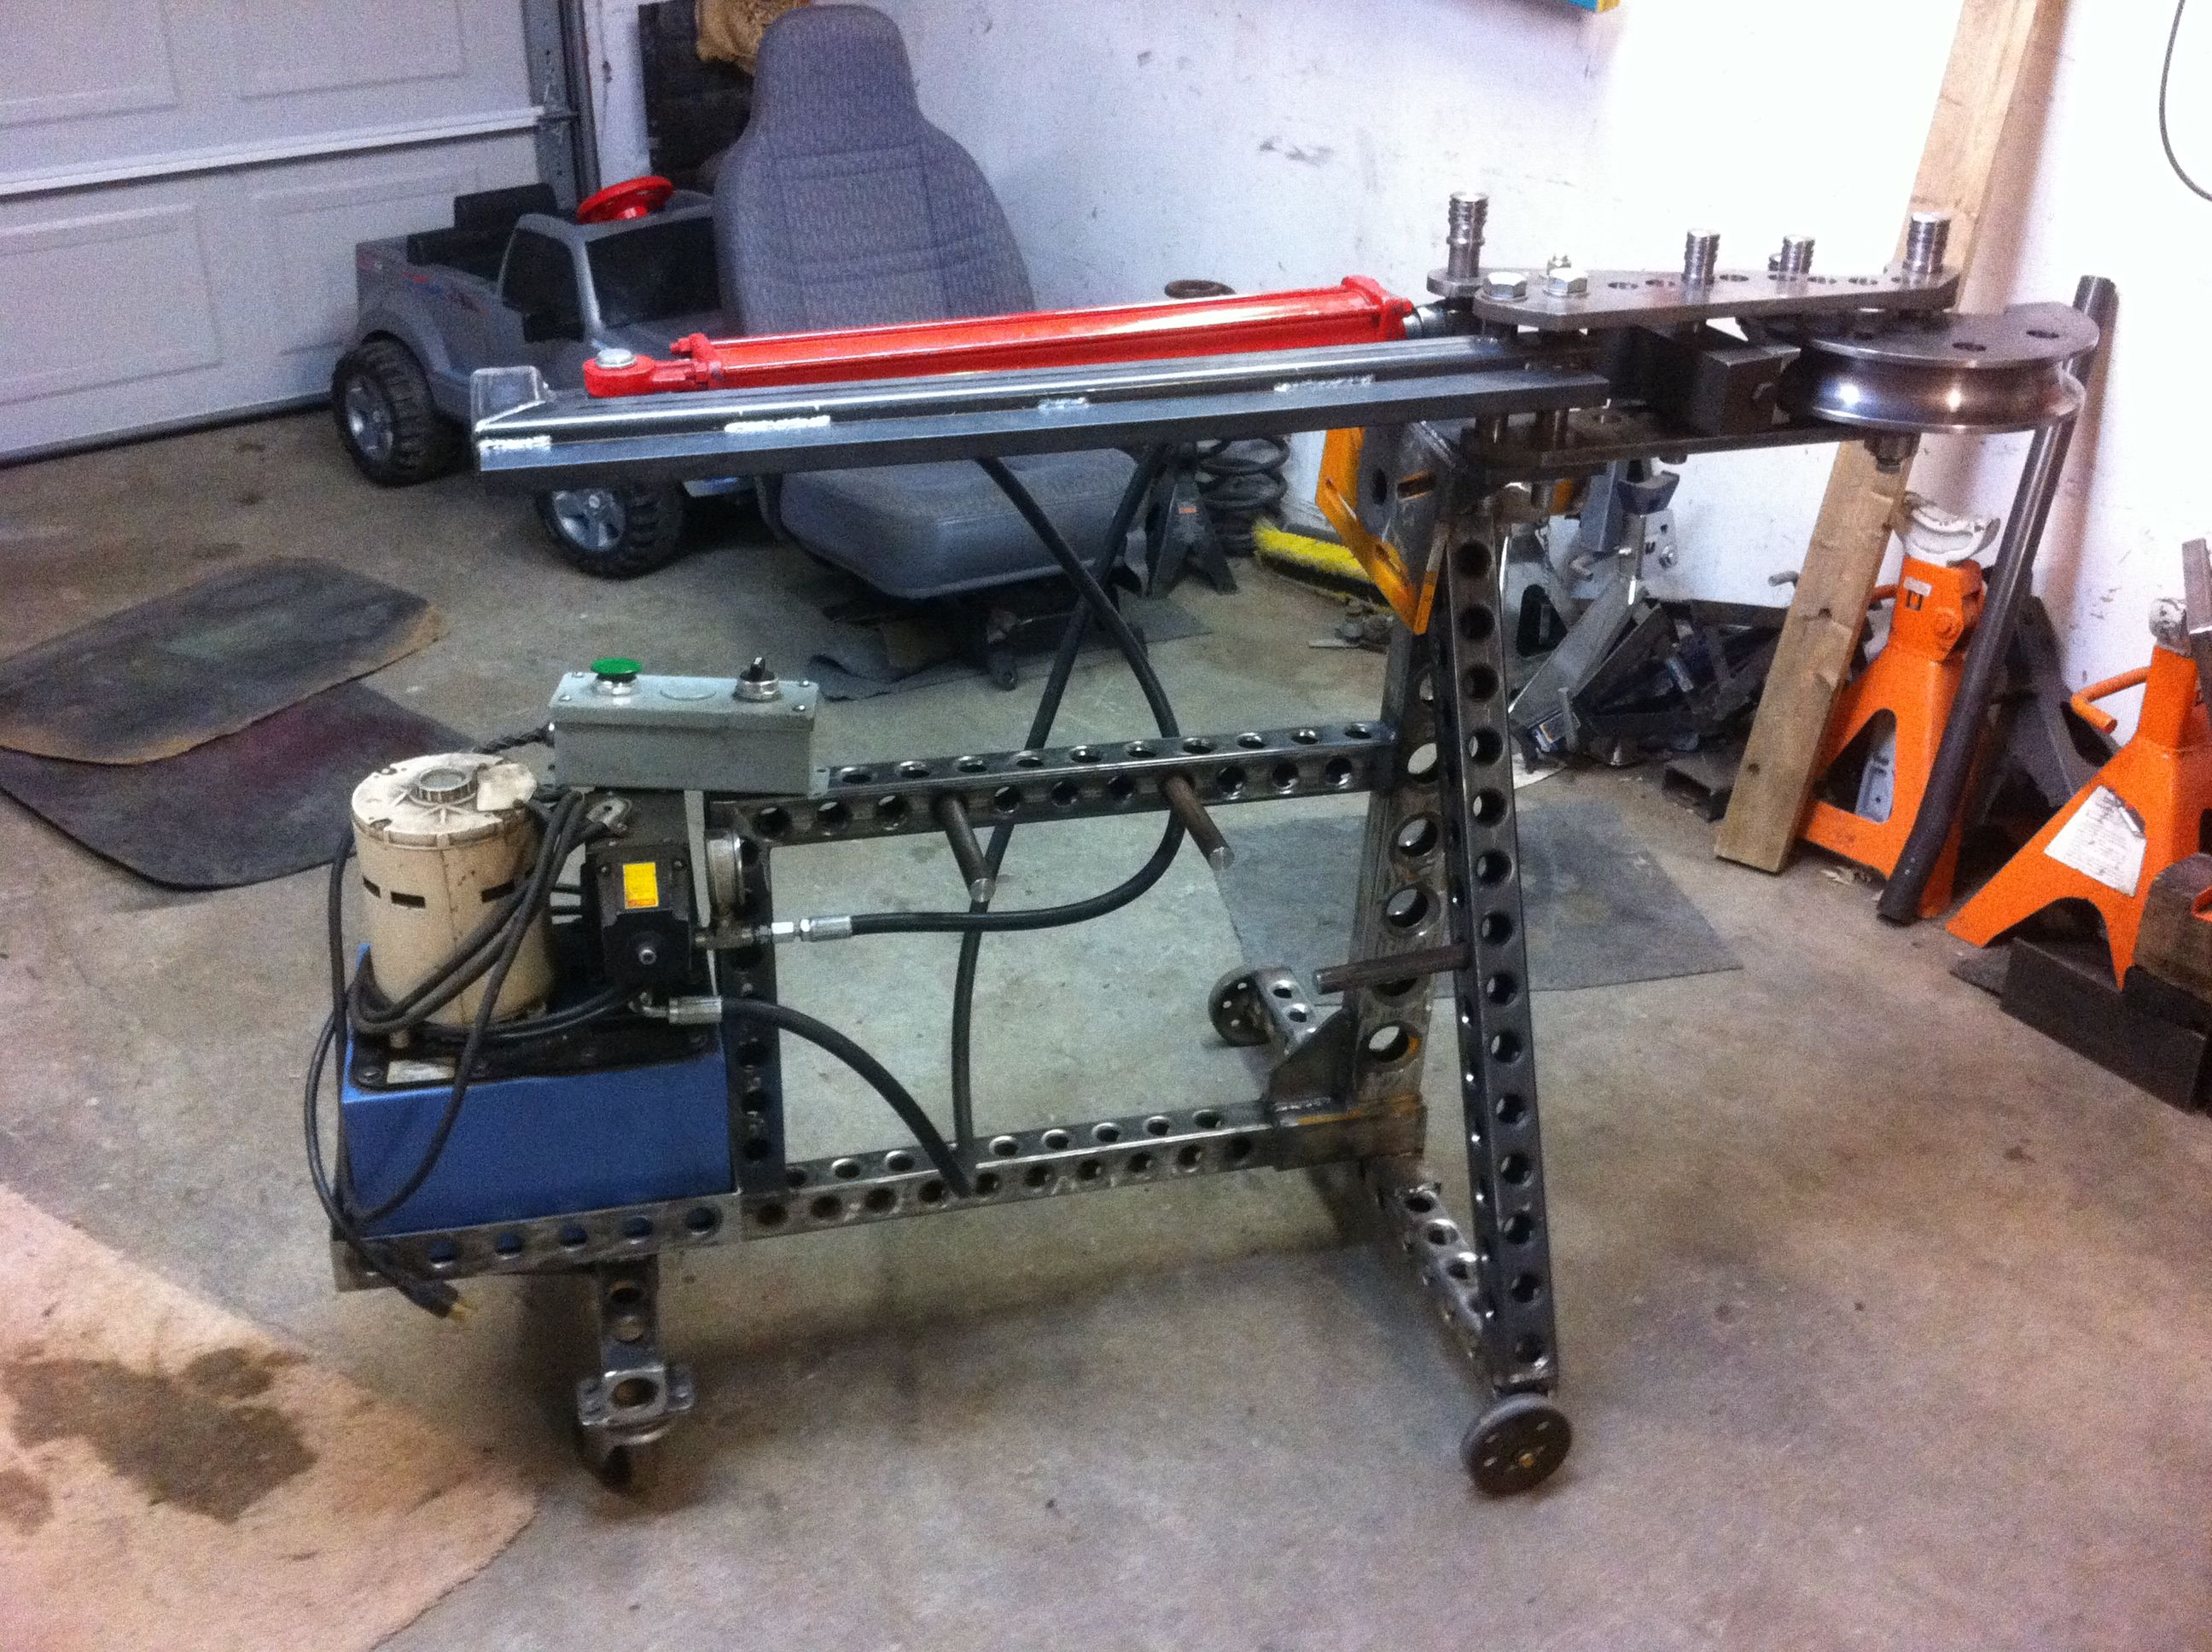 sawmill by tnmike homemade sawmill powered by a 6 5 horsepower